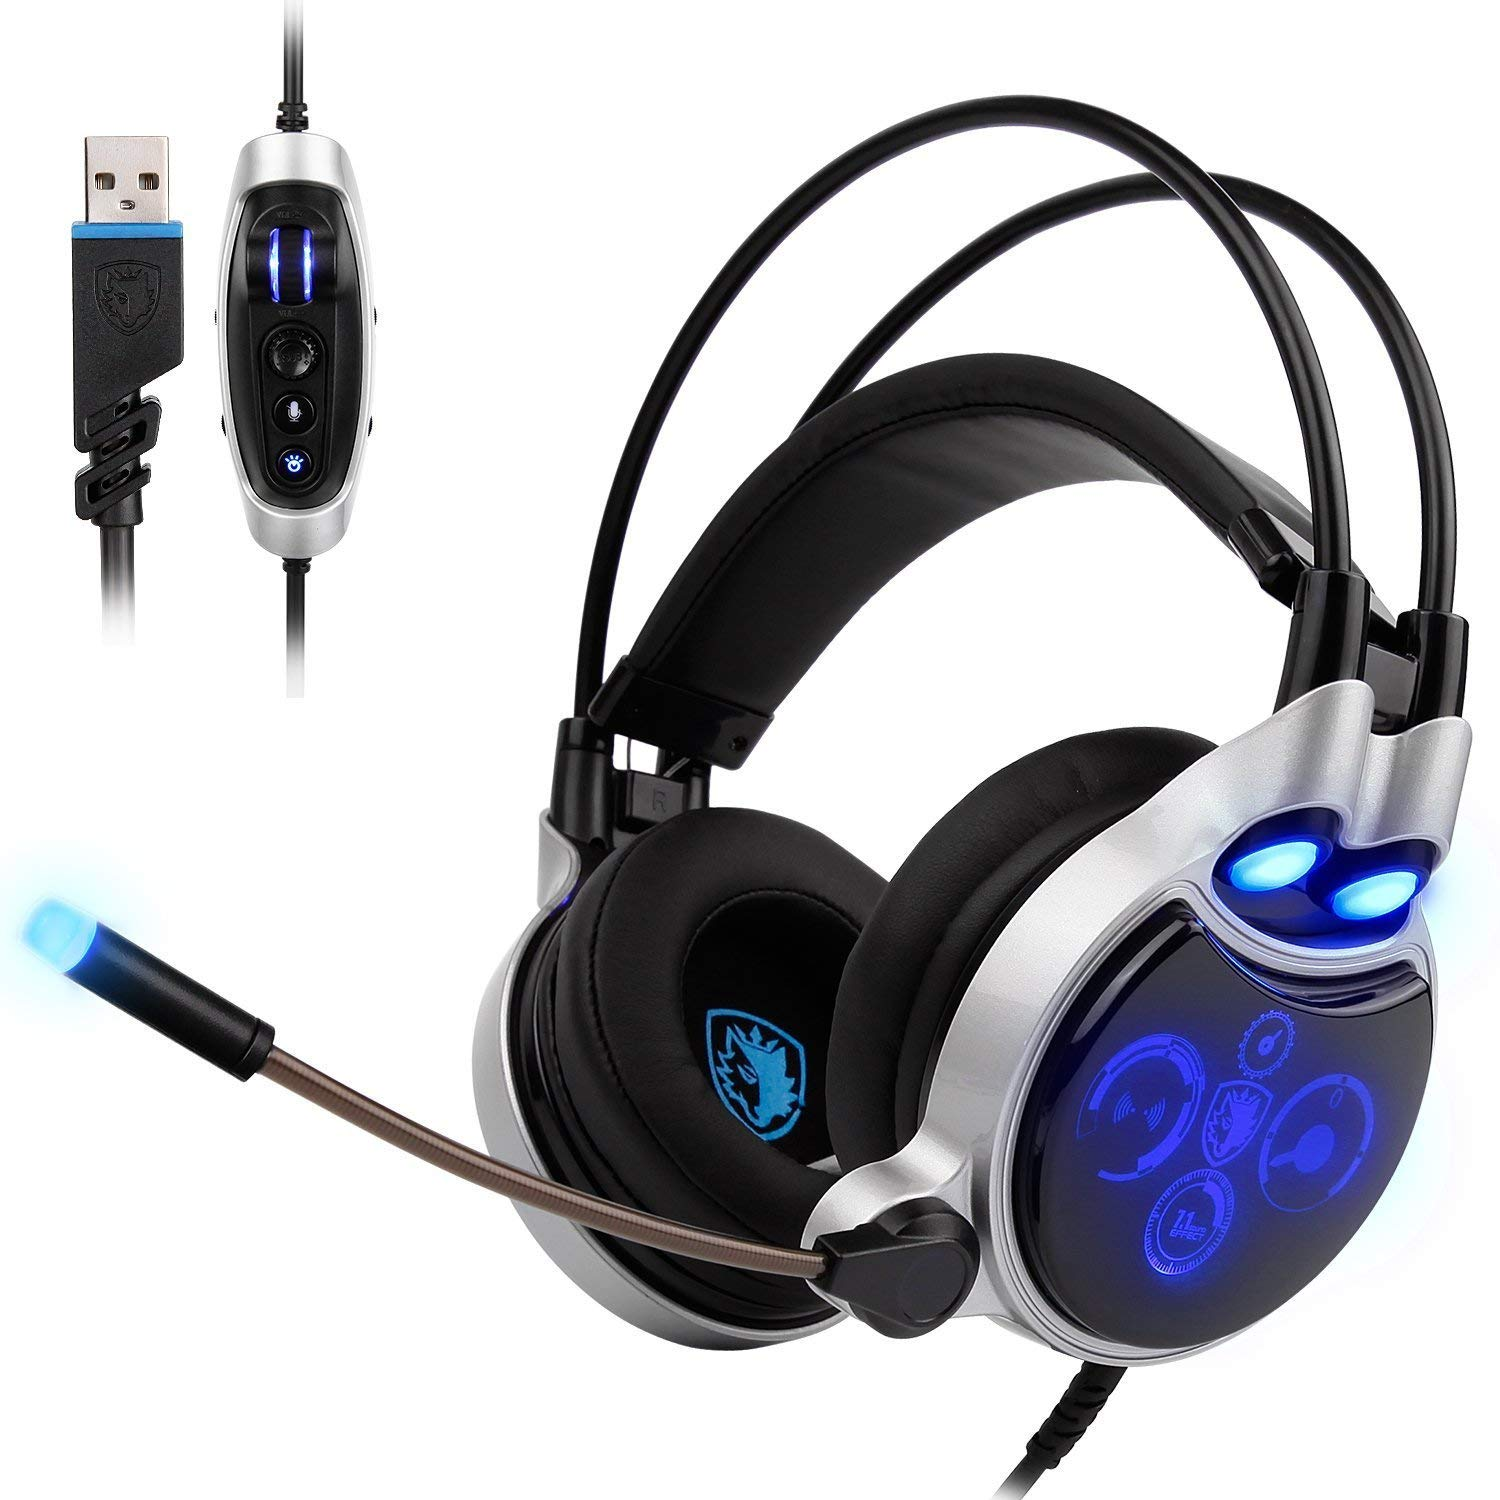 где купить USB Wired Headphones 7.1 Surround Sound PC Gaming Headset,Mic Flexible,Over-Ear Volume Control LED Lighting Noise Cancelling по лучшей цене